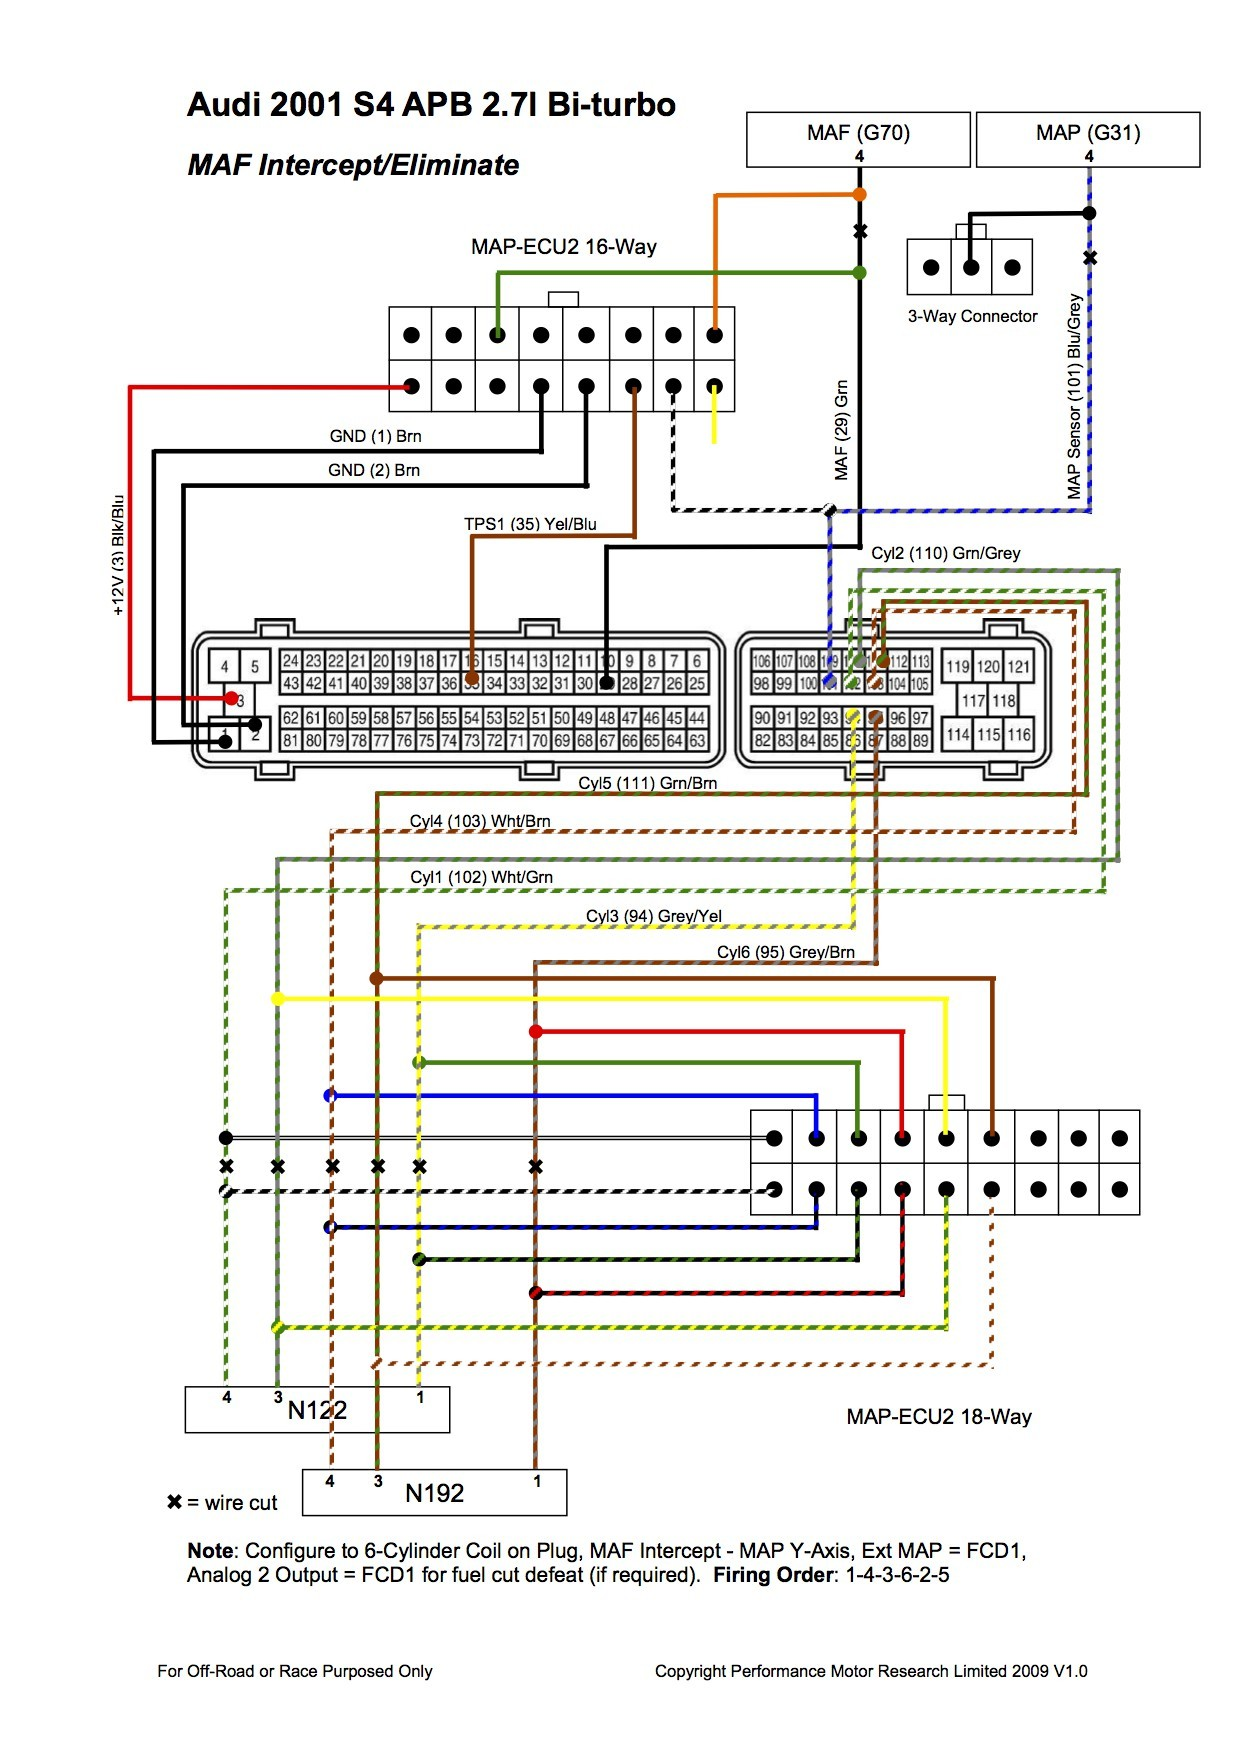 [NRIO_4796]   Jvc Kd Avx40 Wiring Harness Diagram Diagram Base Website Harness Diagram -  VENNDIAGRAMGENES.FONDAZIONEDONNAREGINA.IT | Jvc Kd Avx40 Wiring Harness Diagram |  | Diagram Base Website Full Edition - fondazionedonnaregina.it